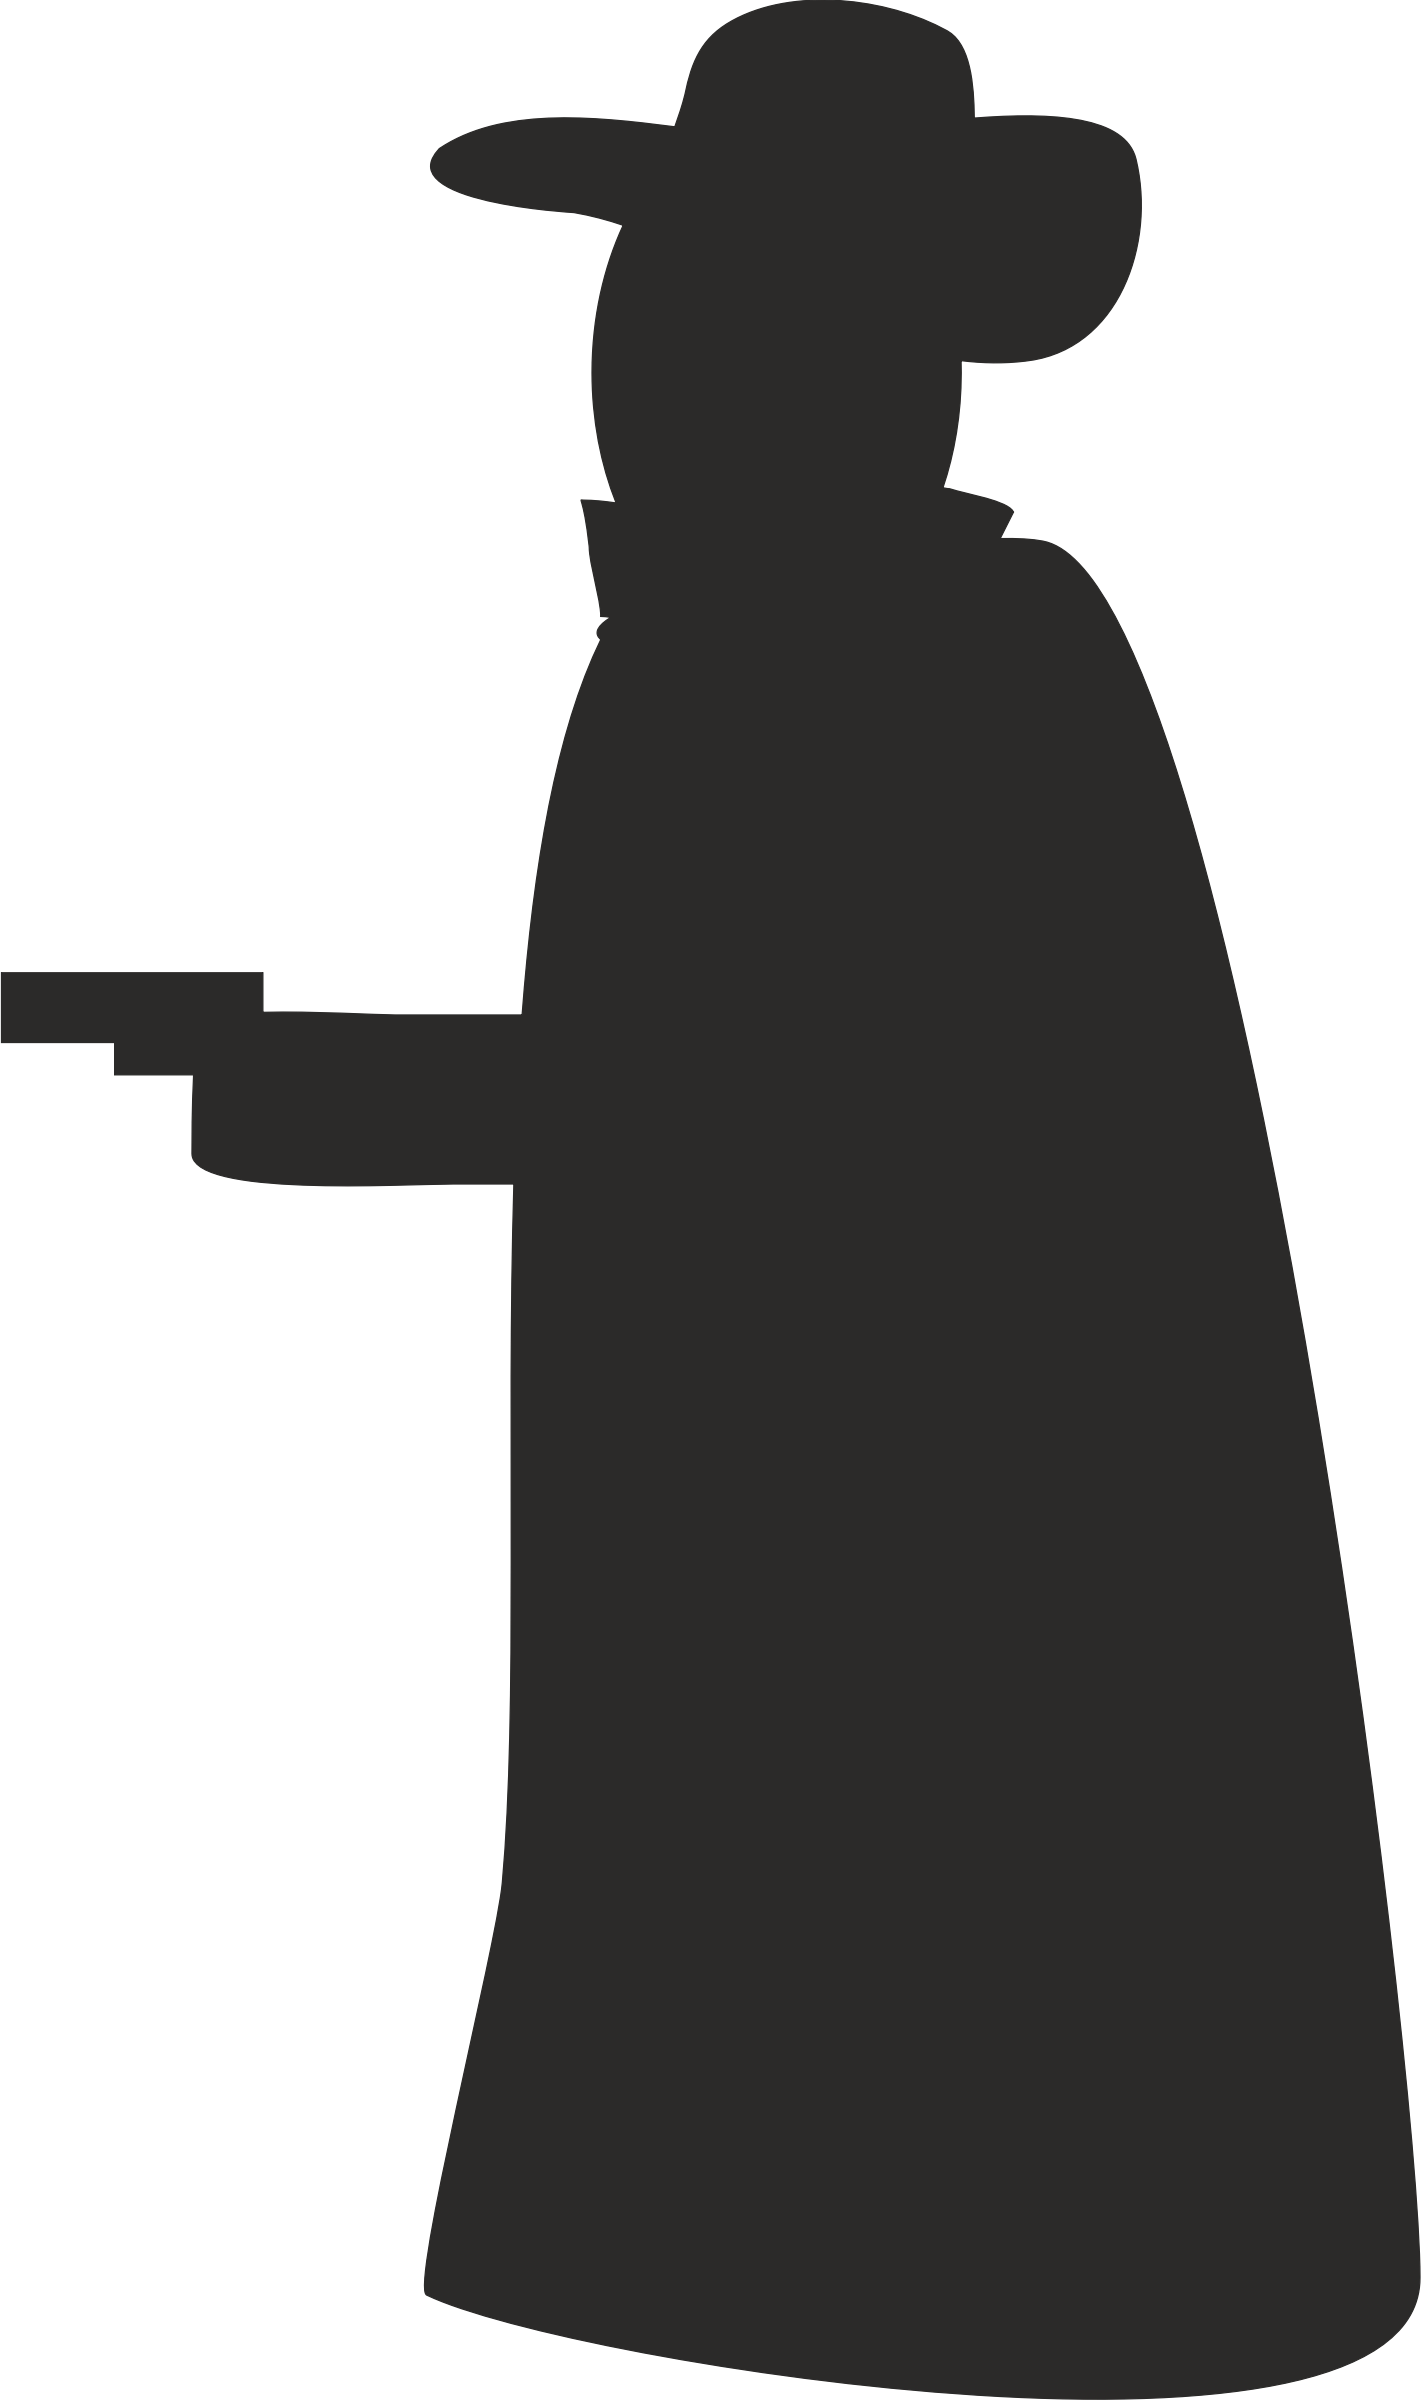 Robber with gun silhouette by pnx